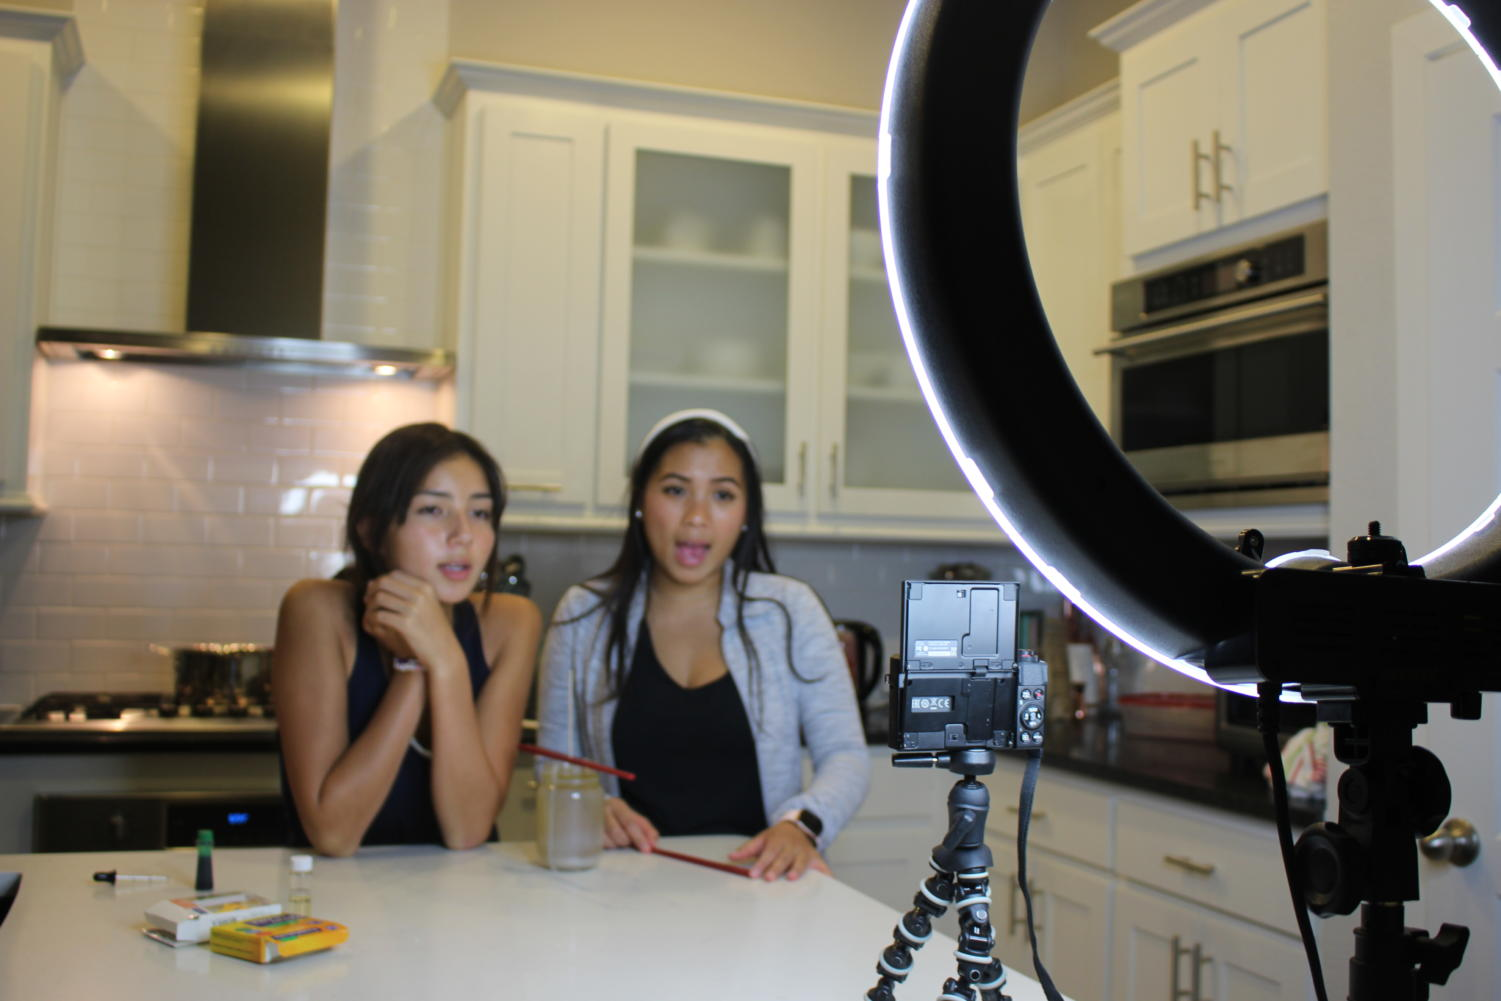 With help from her cousin, Ranchview High School sophomore Emma Immanivong (left), Coppell High School senior Alyson Immanivong films a DIY fall candle video on Oct. 7 for her YouTube channel. Immanivong posts videos every Wednesday on her channel that has more than 500 subscribers.